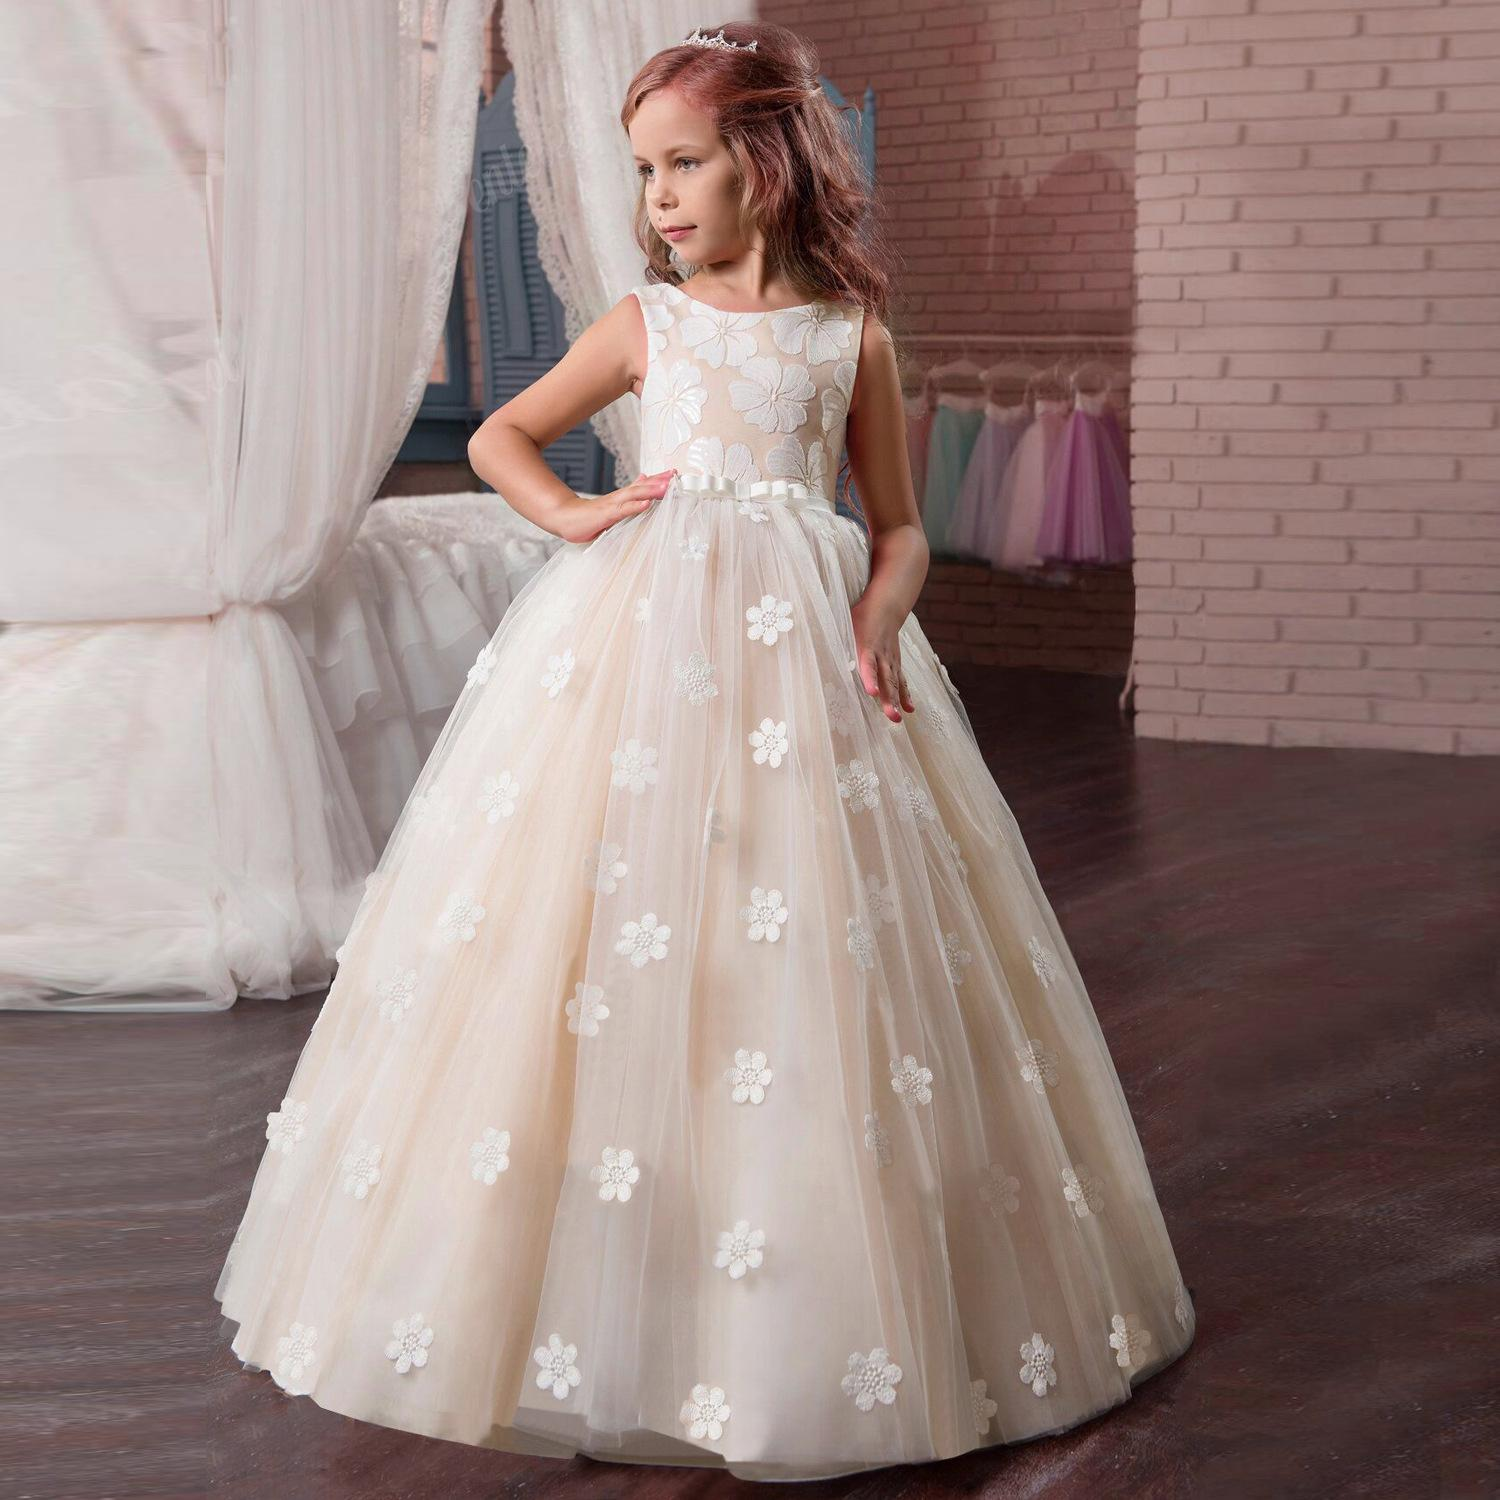 b52e8f747a497 Custom Made Flower Girl Dresses for Wedding Blush Pink Princess Tutu  Sequined Appliqued Lace Bow 2019 Vintage First holy Communion Dress